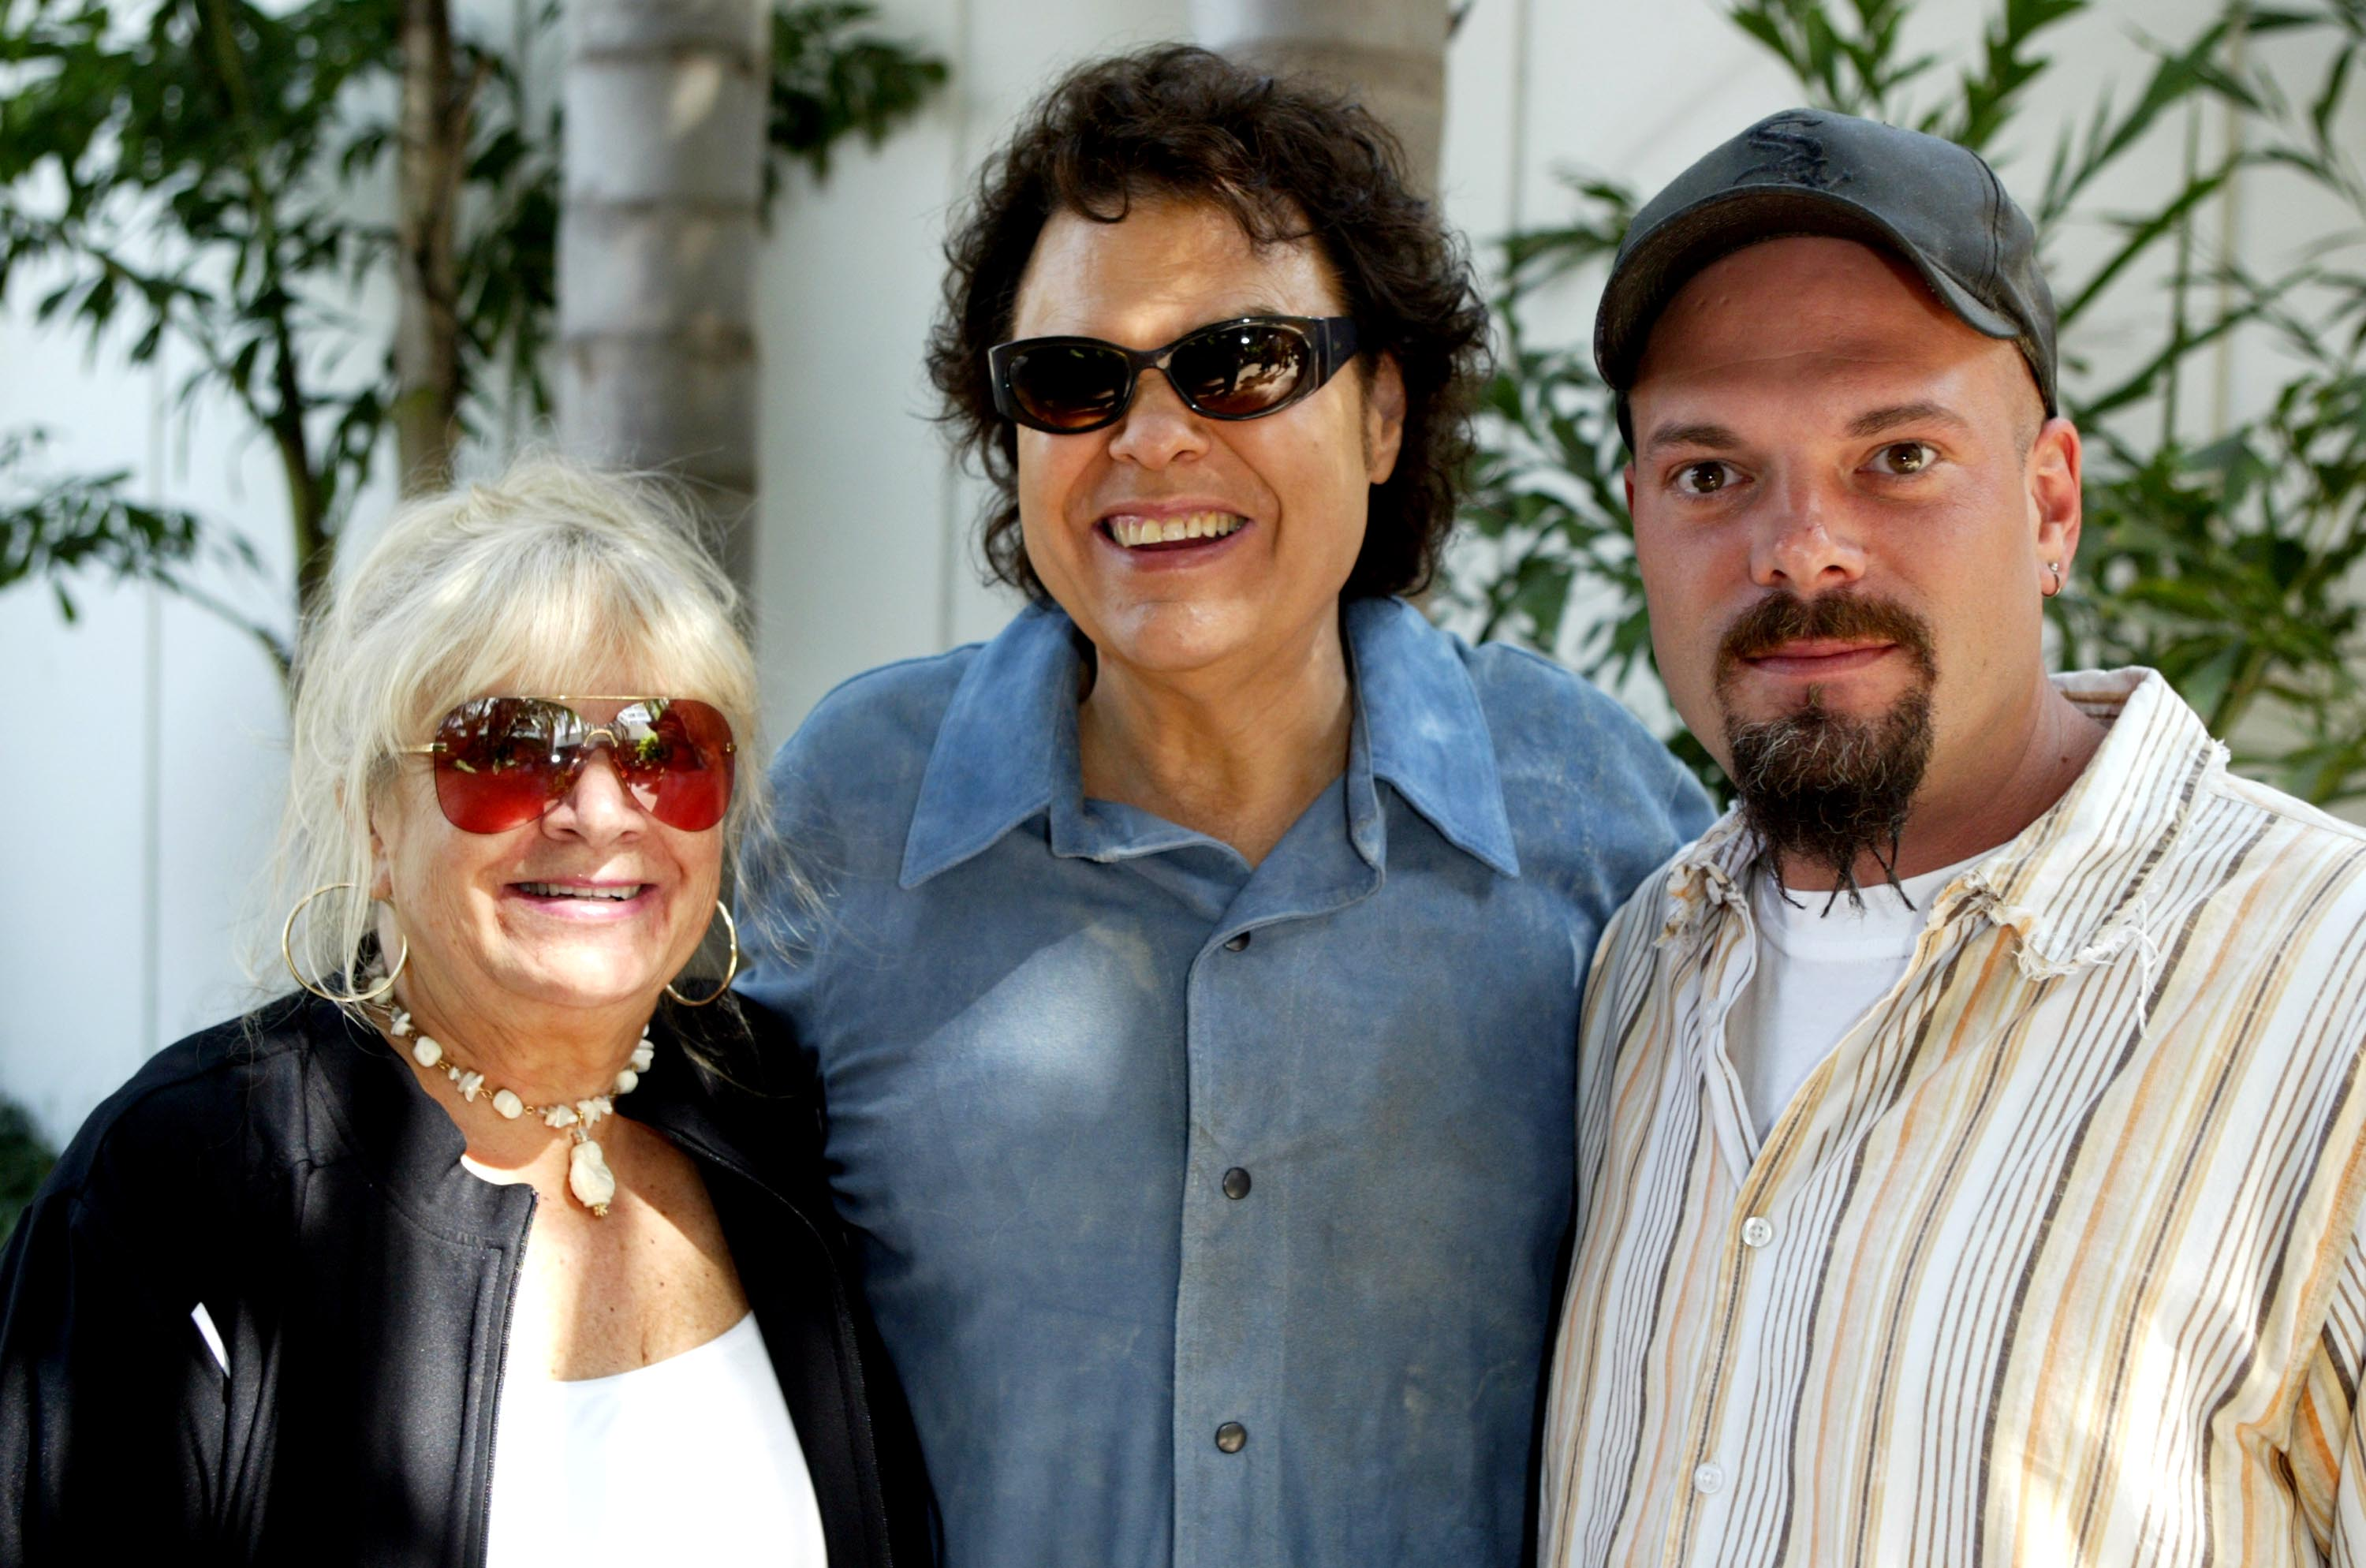 Ronnie Milsap with his wife, Joyce, and son, Todd, at the rehearsals for the Ray Charles tribute event | Photo: Getty Images